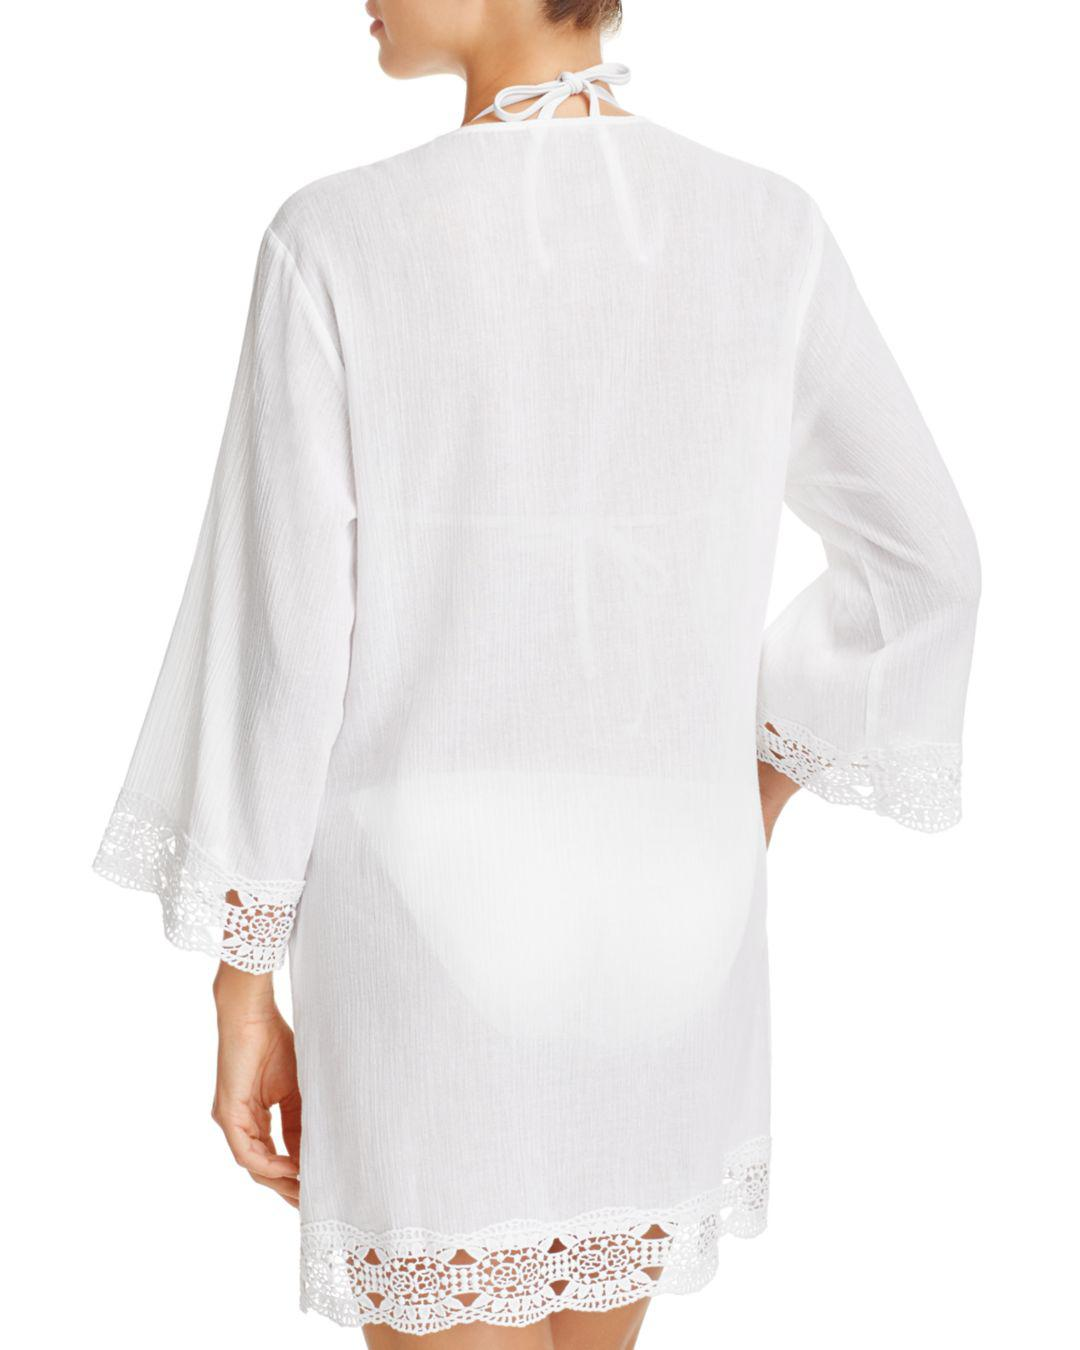 81bf15c17f Lyst - La Blanca Island Fare Tunic Swim Cover-up in White